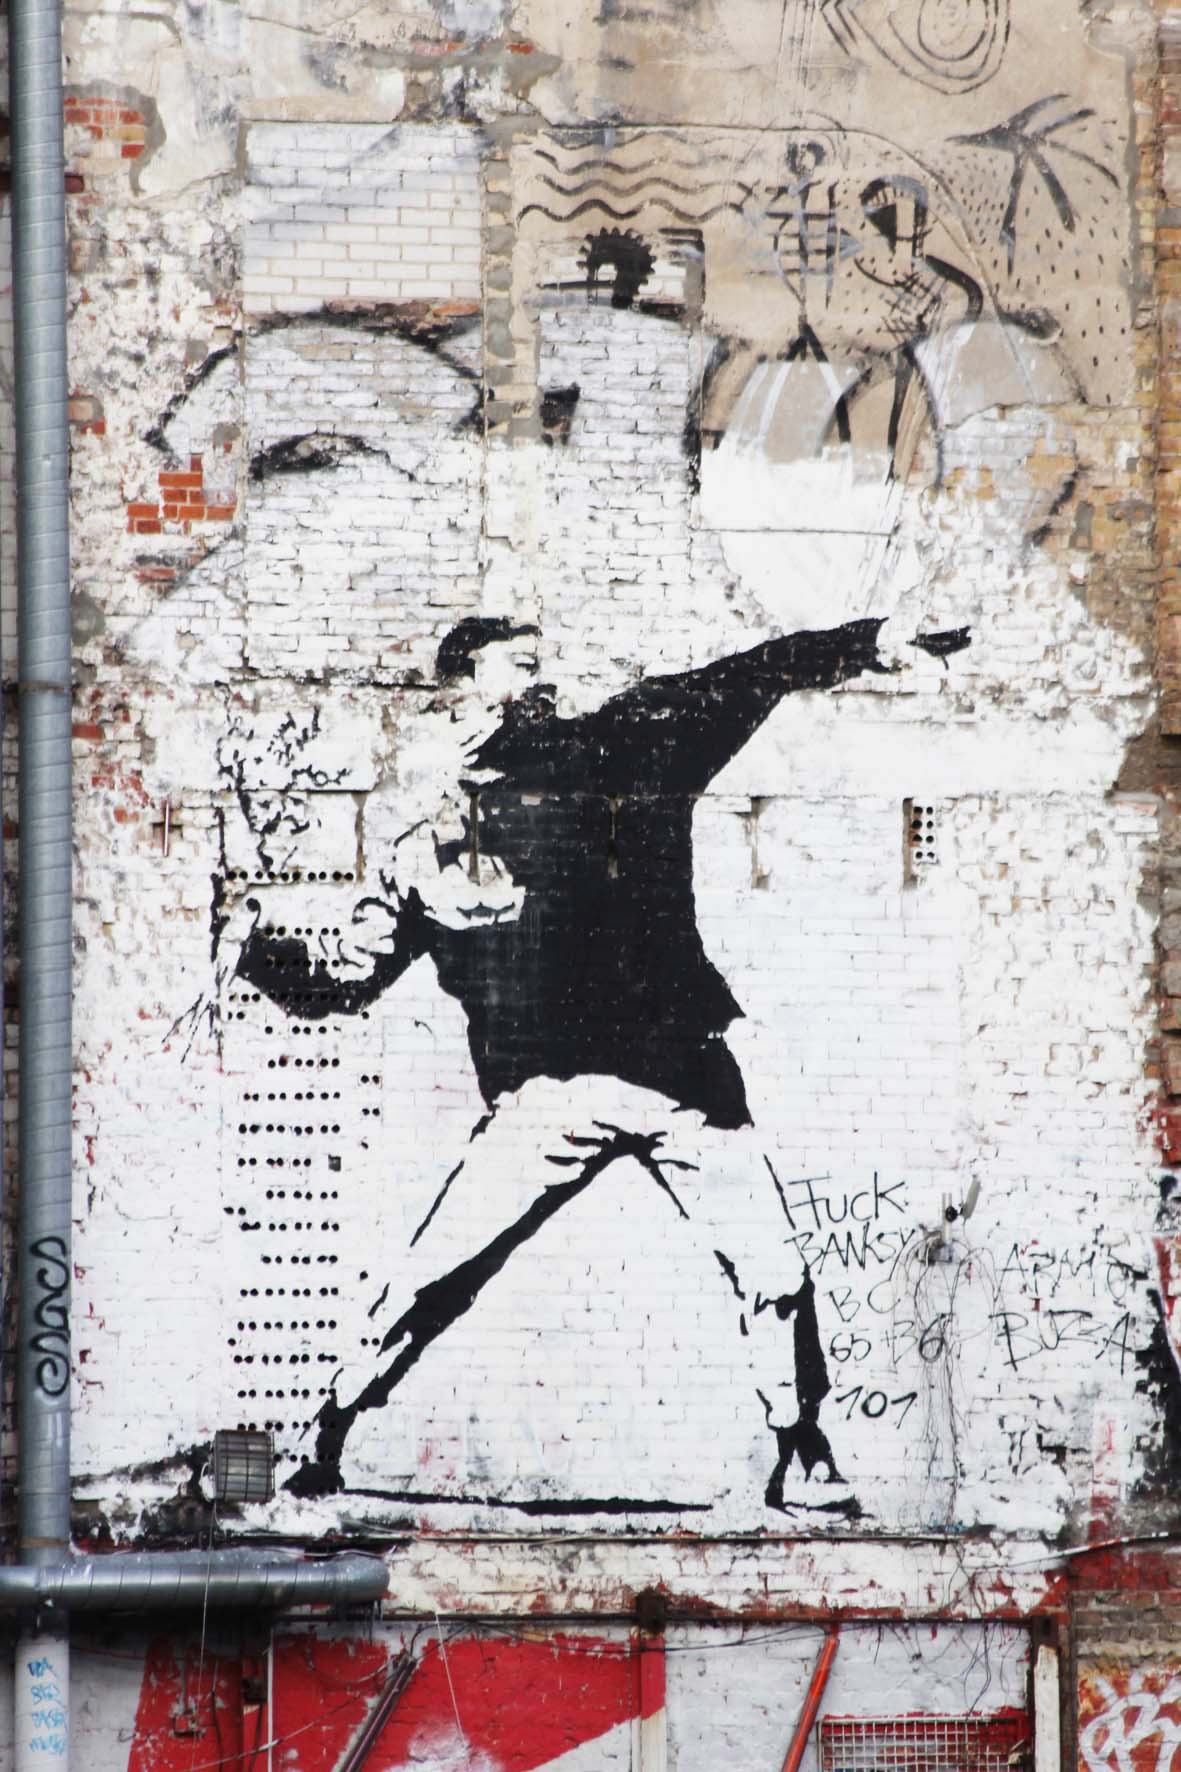 Banksy Flower Chucker Berlin